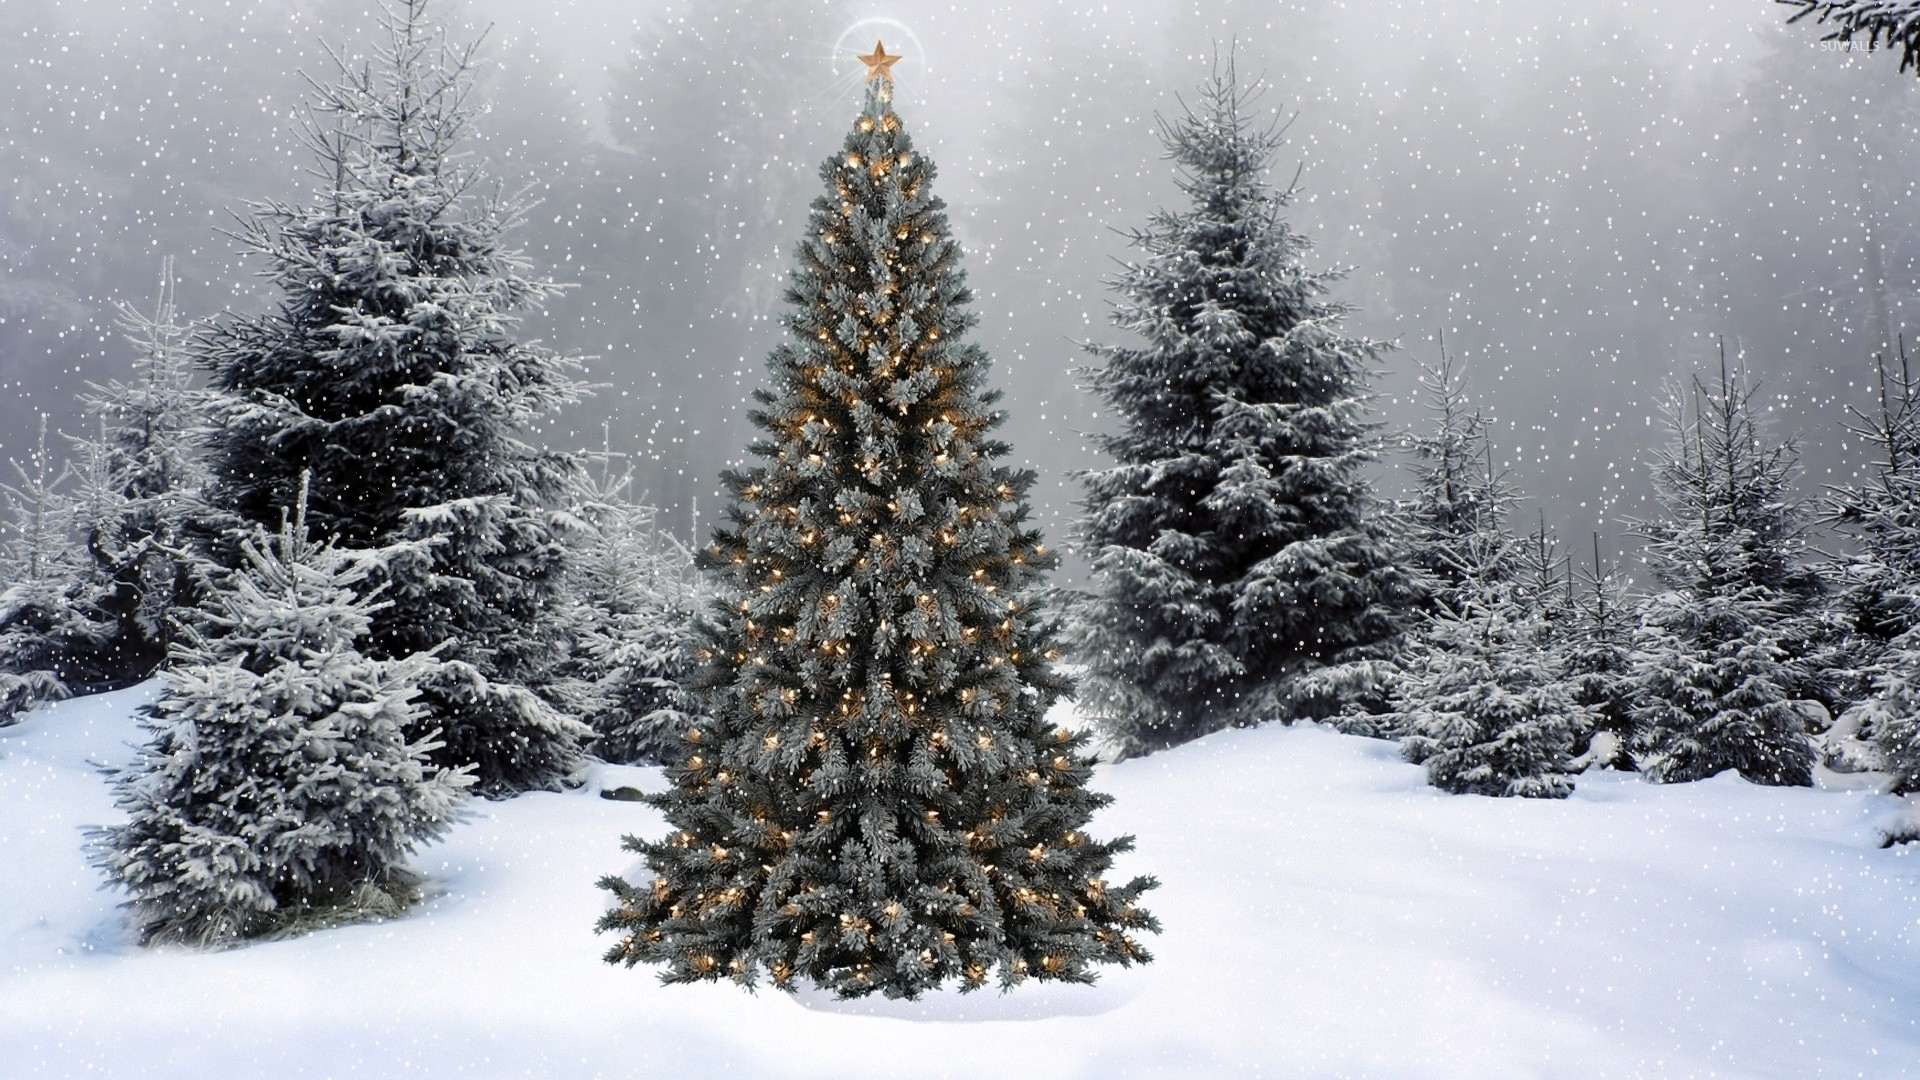 1920x1080 Snow falling on the Christmas tree wallpaper